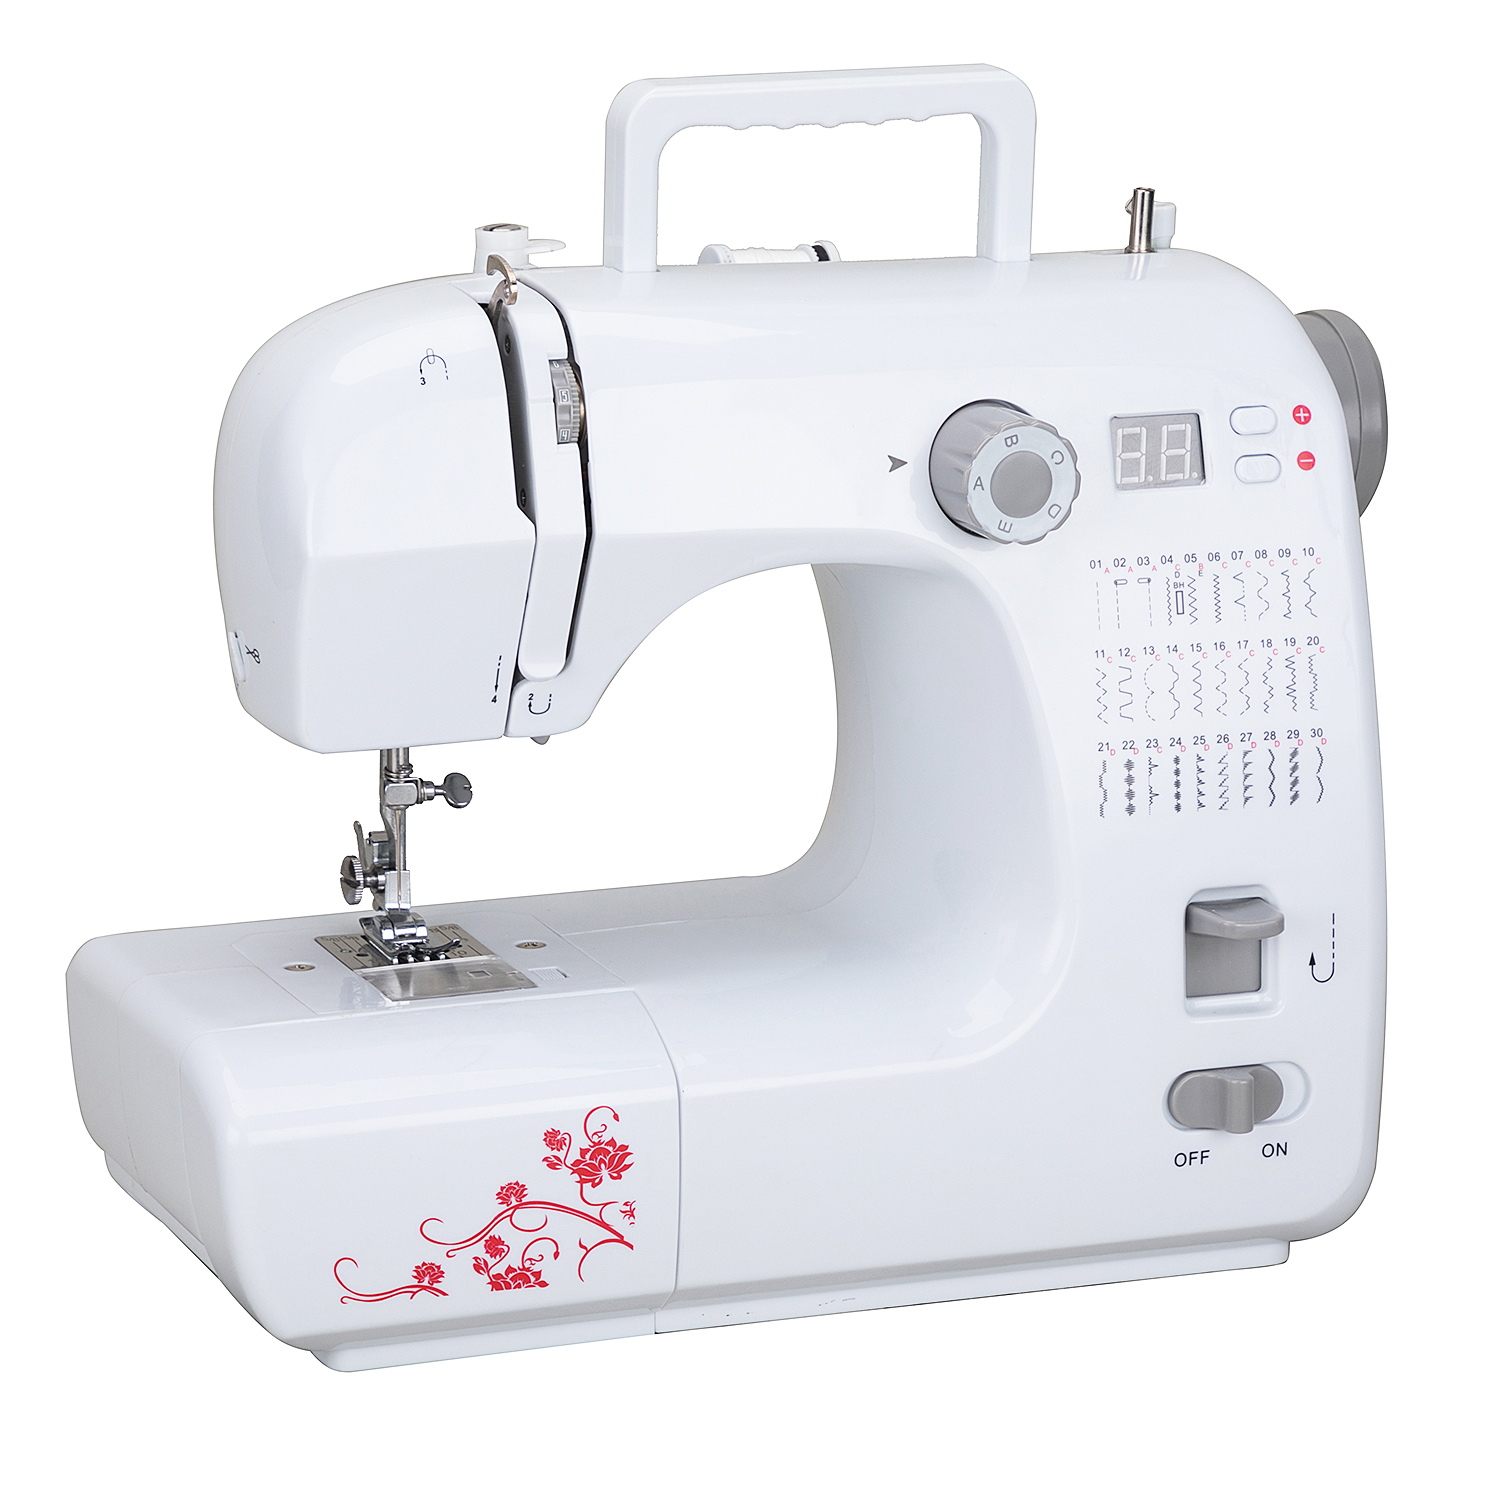 FHSM 702 Multi-purpose Electric Industrial Sewing Machine Factory Price